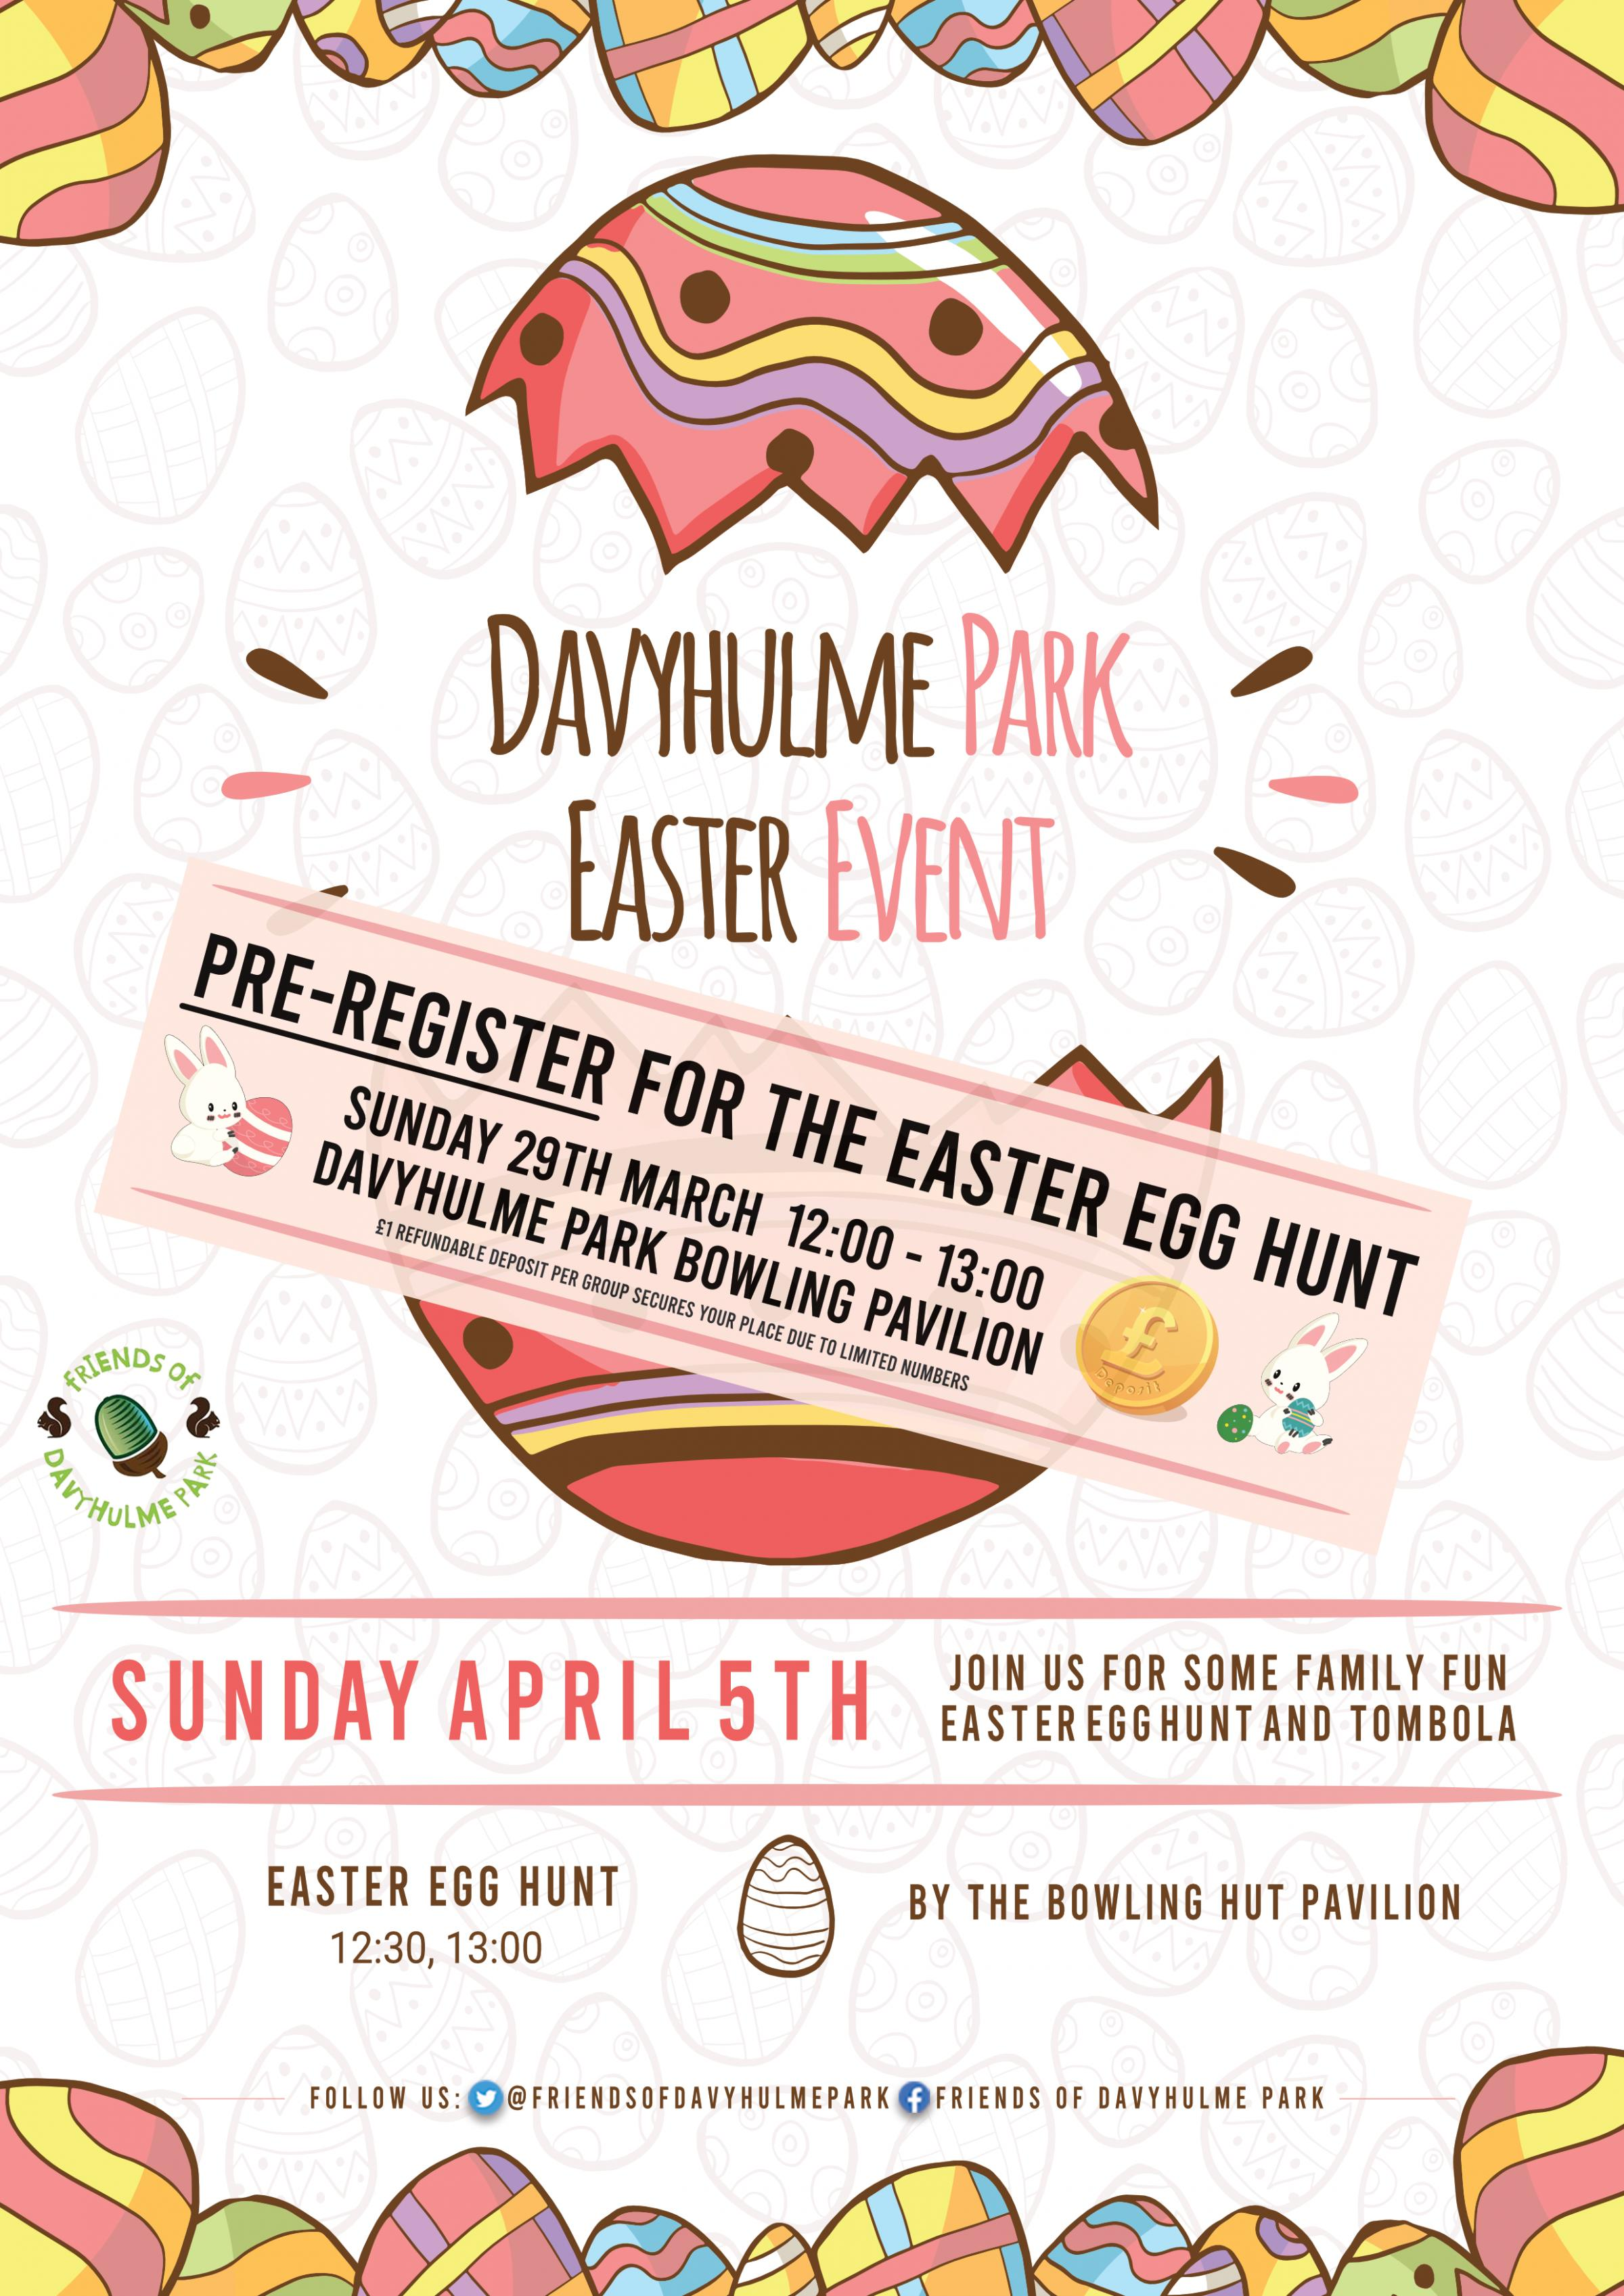 Easter Event - Easter egg Hunt, raffle and Tombola